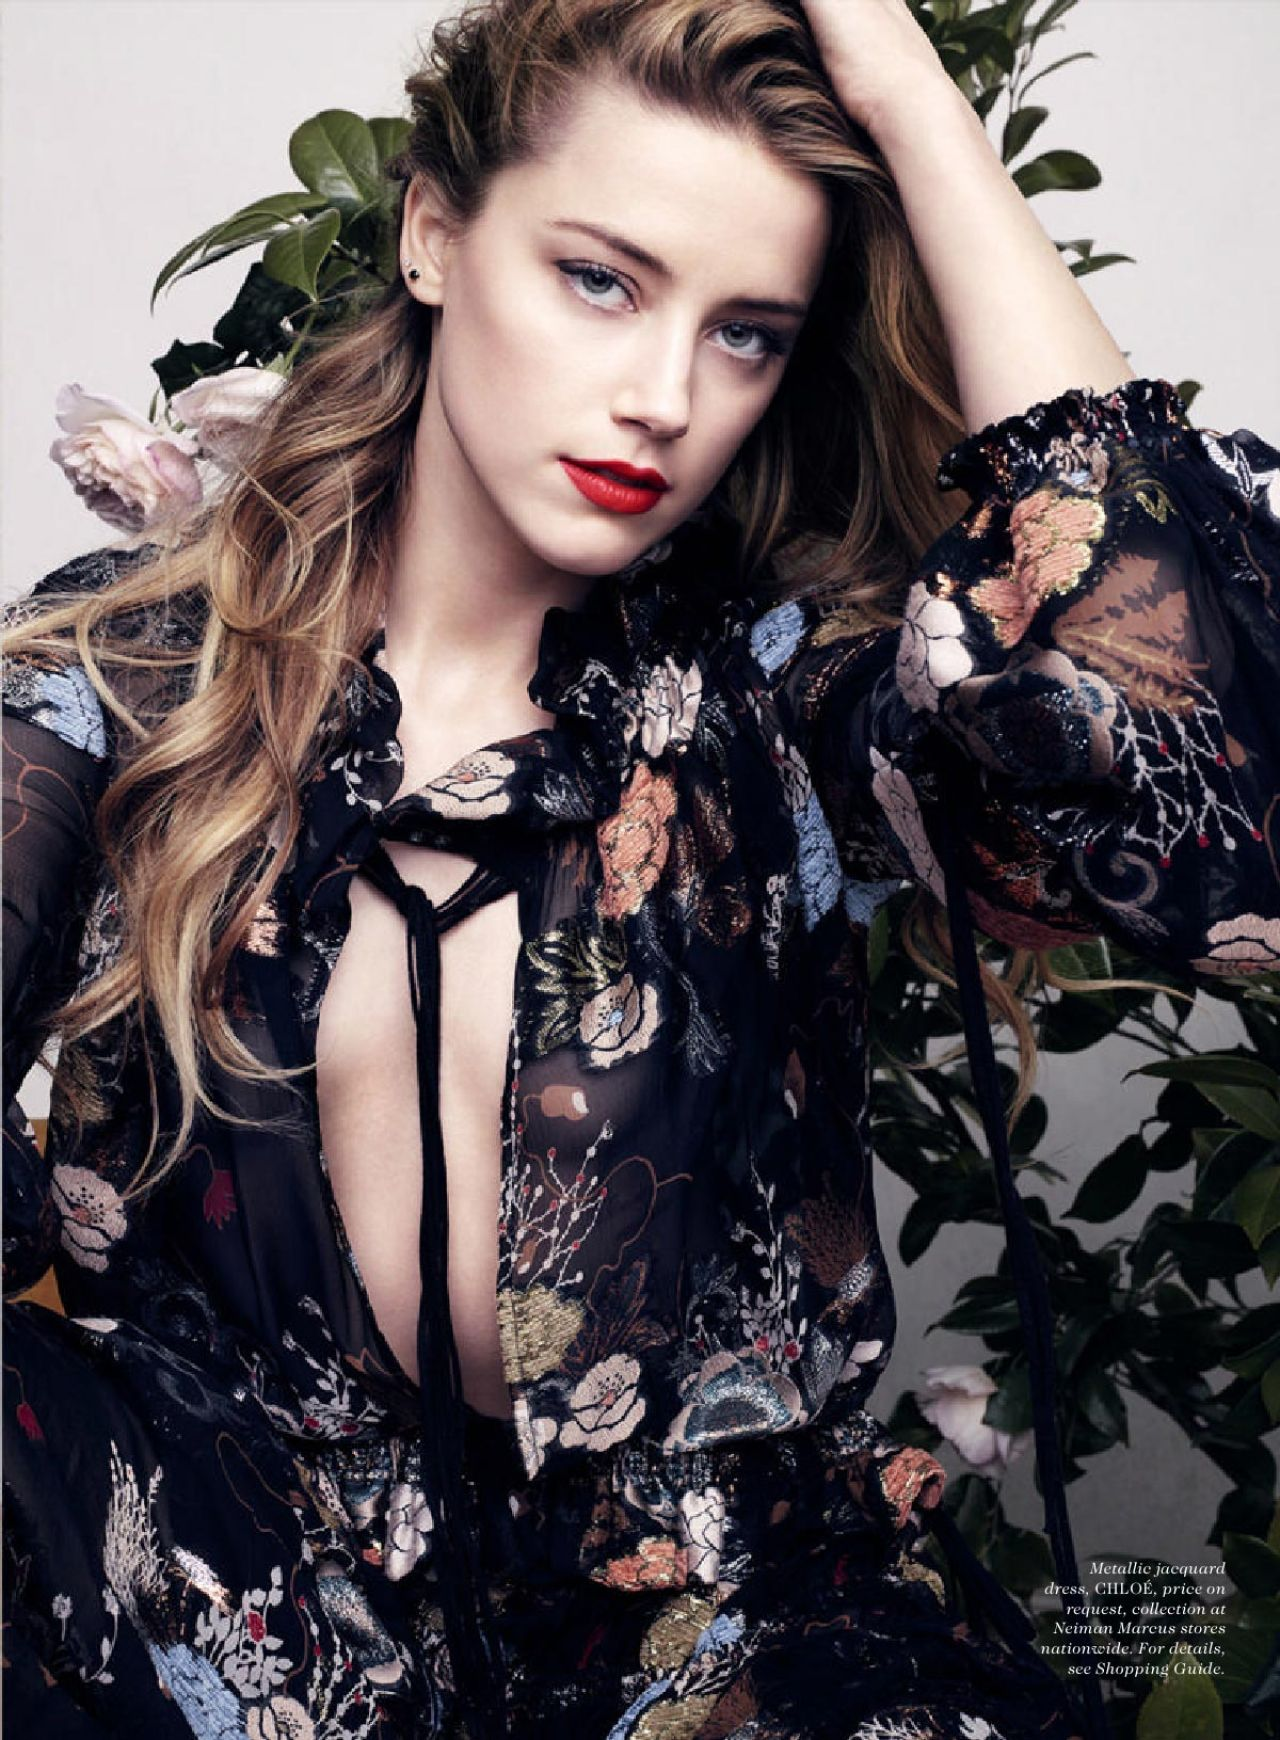 Fashion style Heard amber elle july for woman